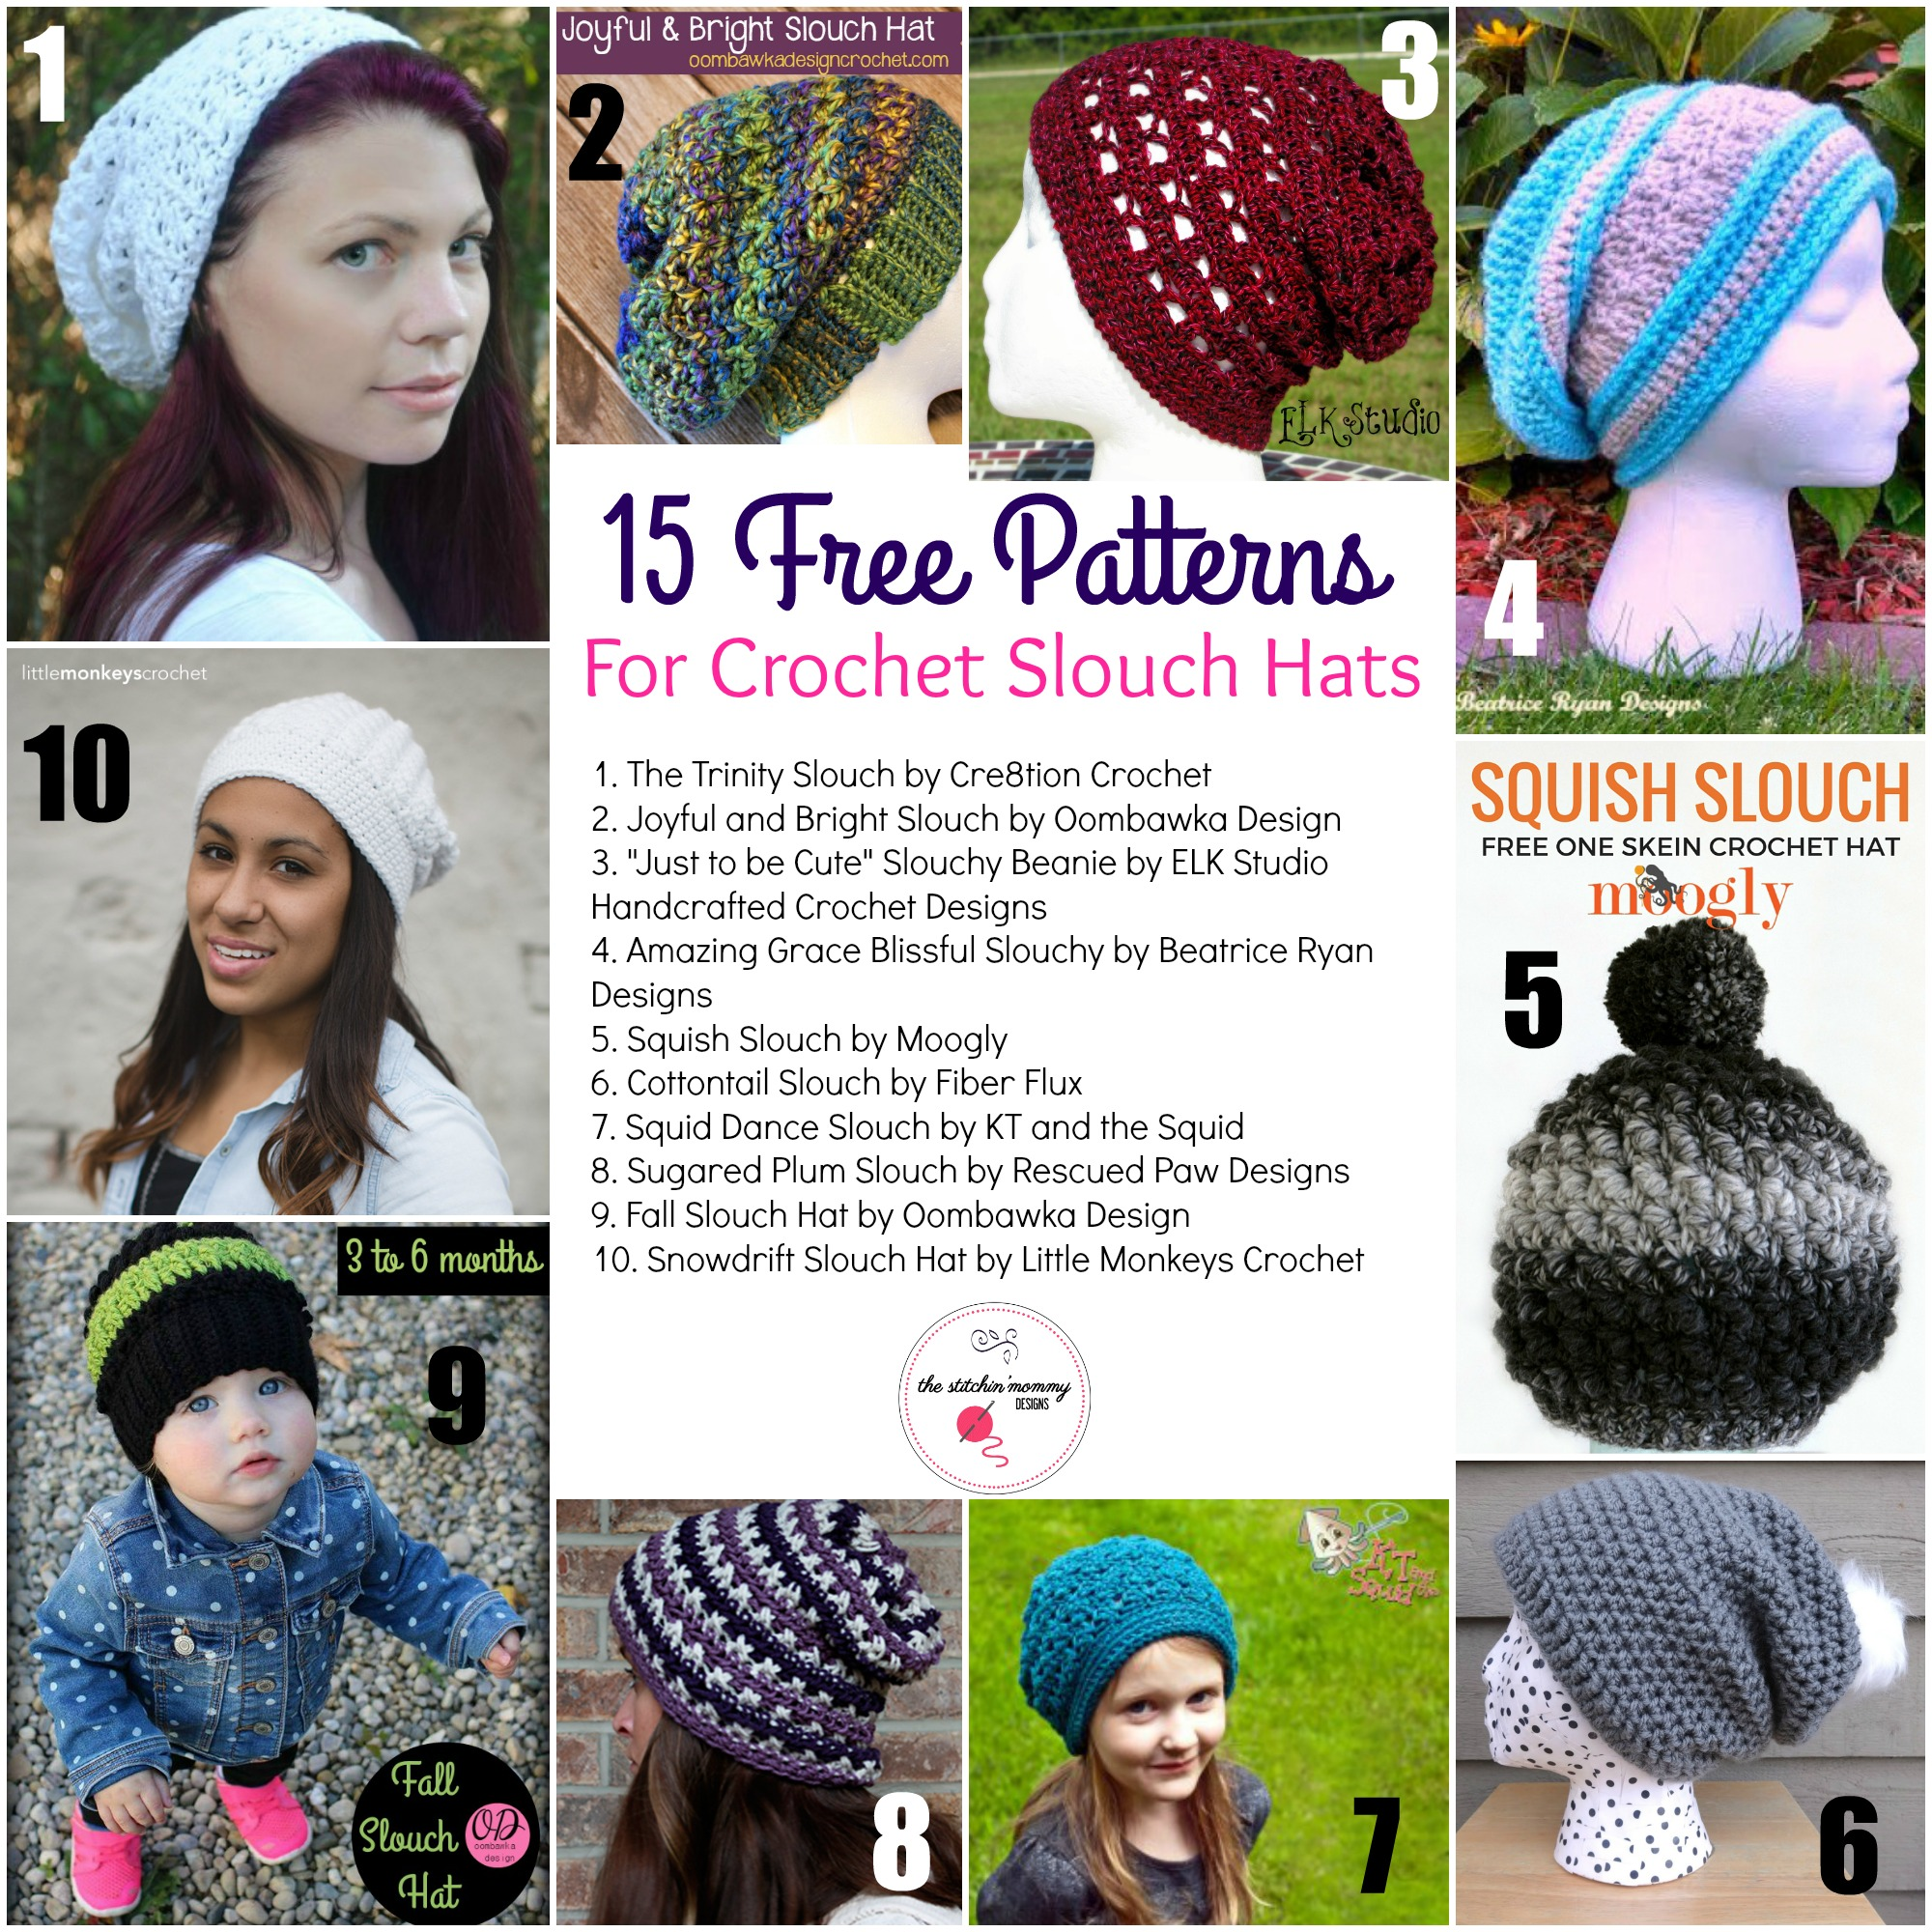 15 Free Patterns for Crochet Slouch Hats - The Stitchin Mommy